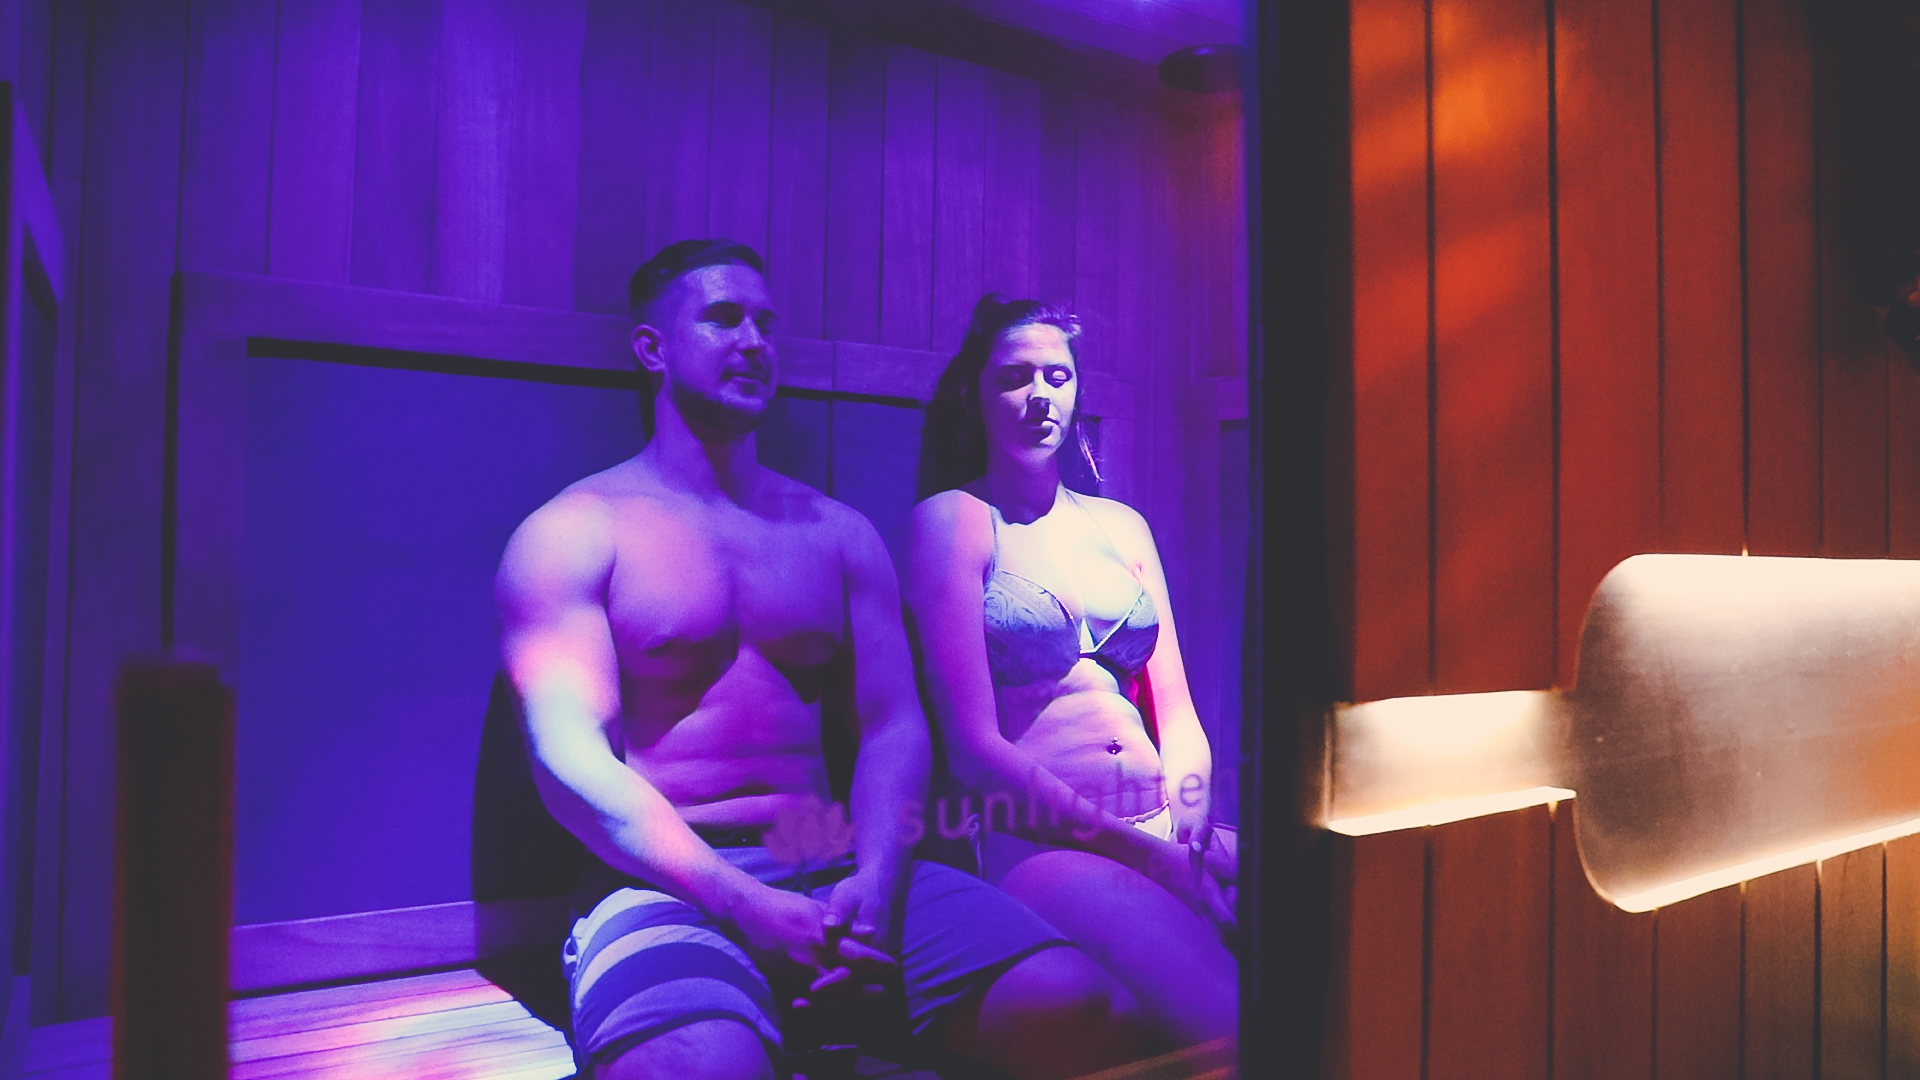 You have the option to sit in our sauna alone, or with a friend.